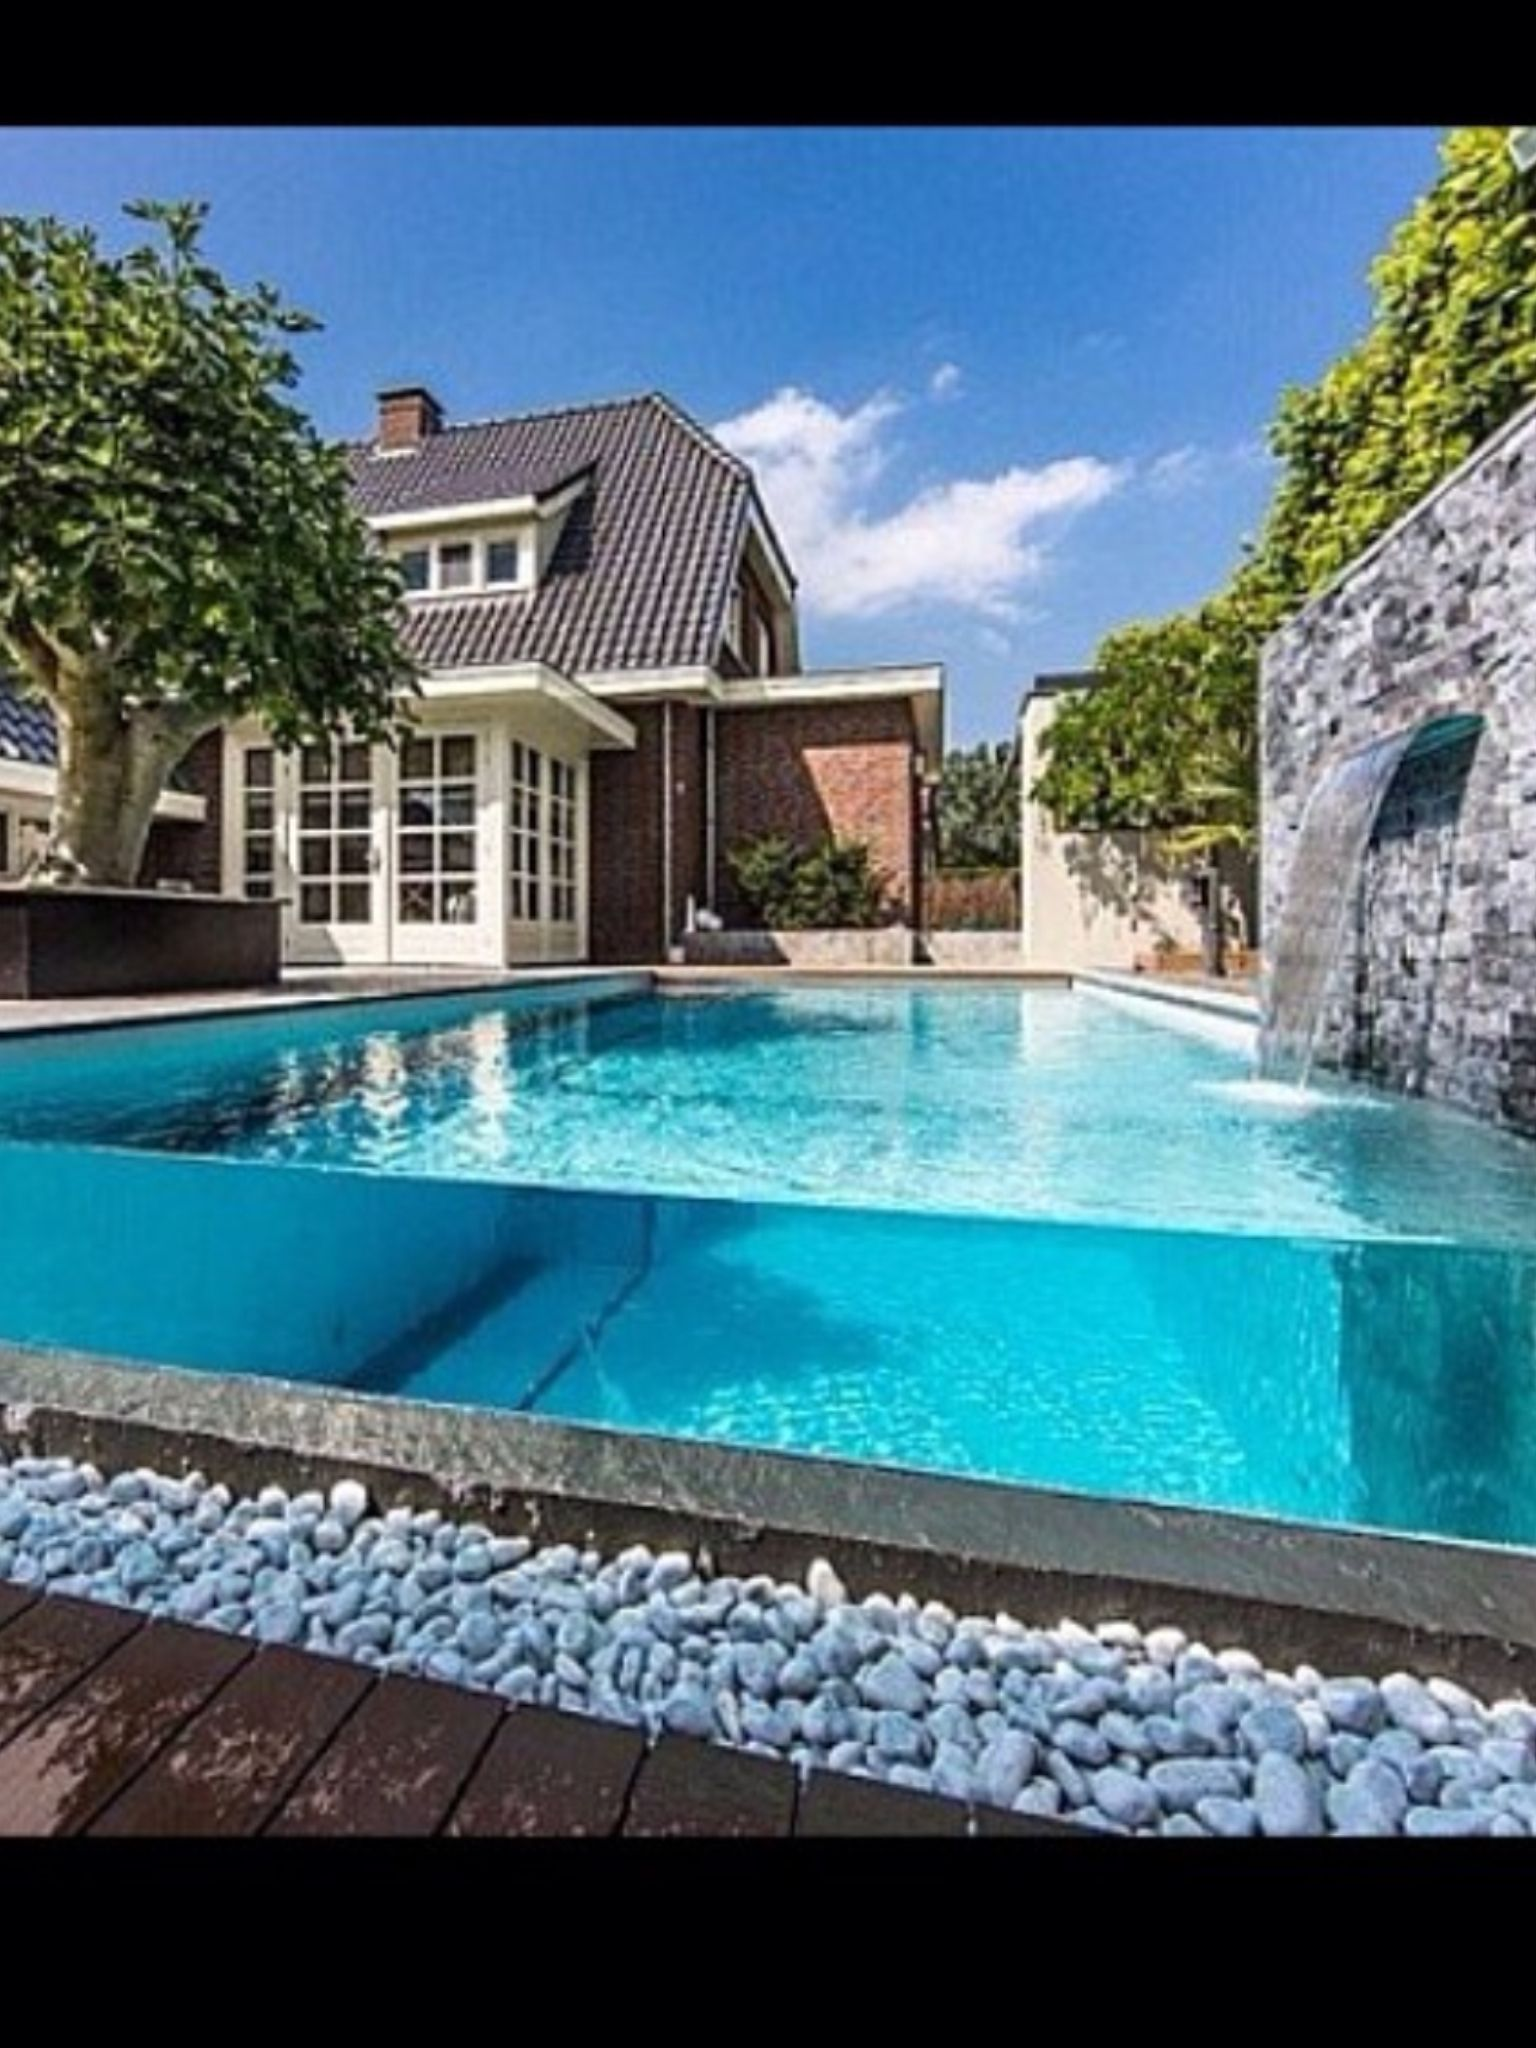 Crystal clear glass pool the great outdoors in 2019 small backyard pools swimming pool - Modern above ground pools ...